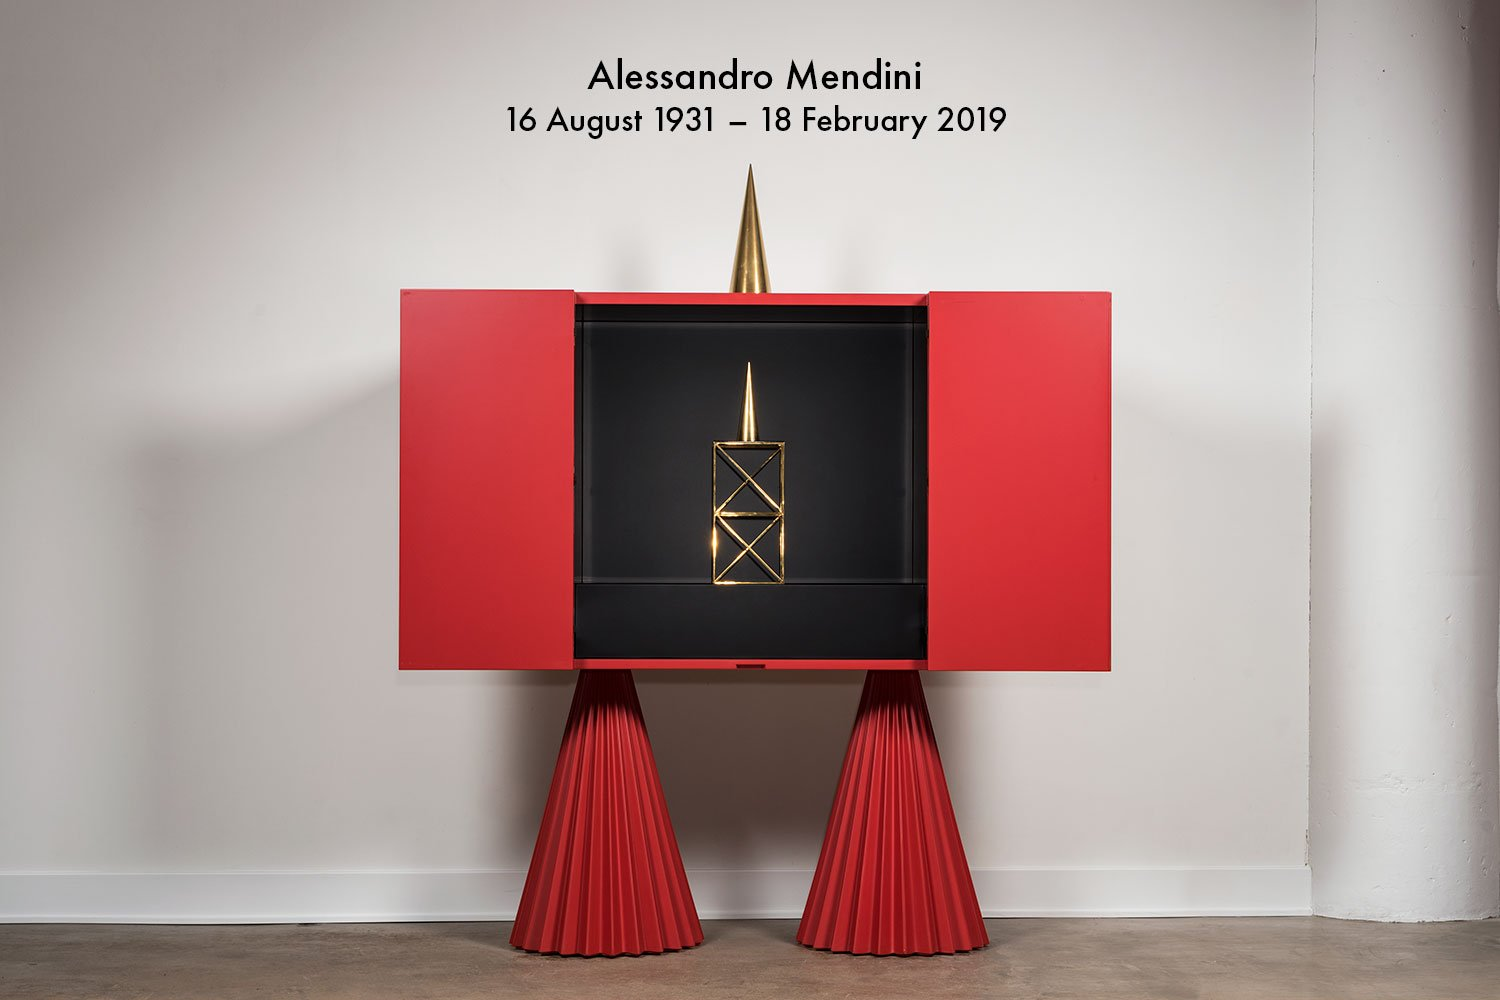 Italian architect and designer Alessandro Mendini